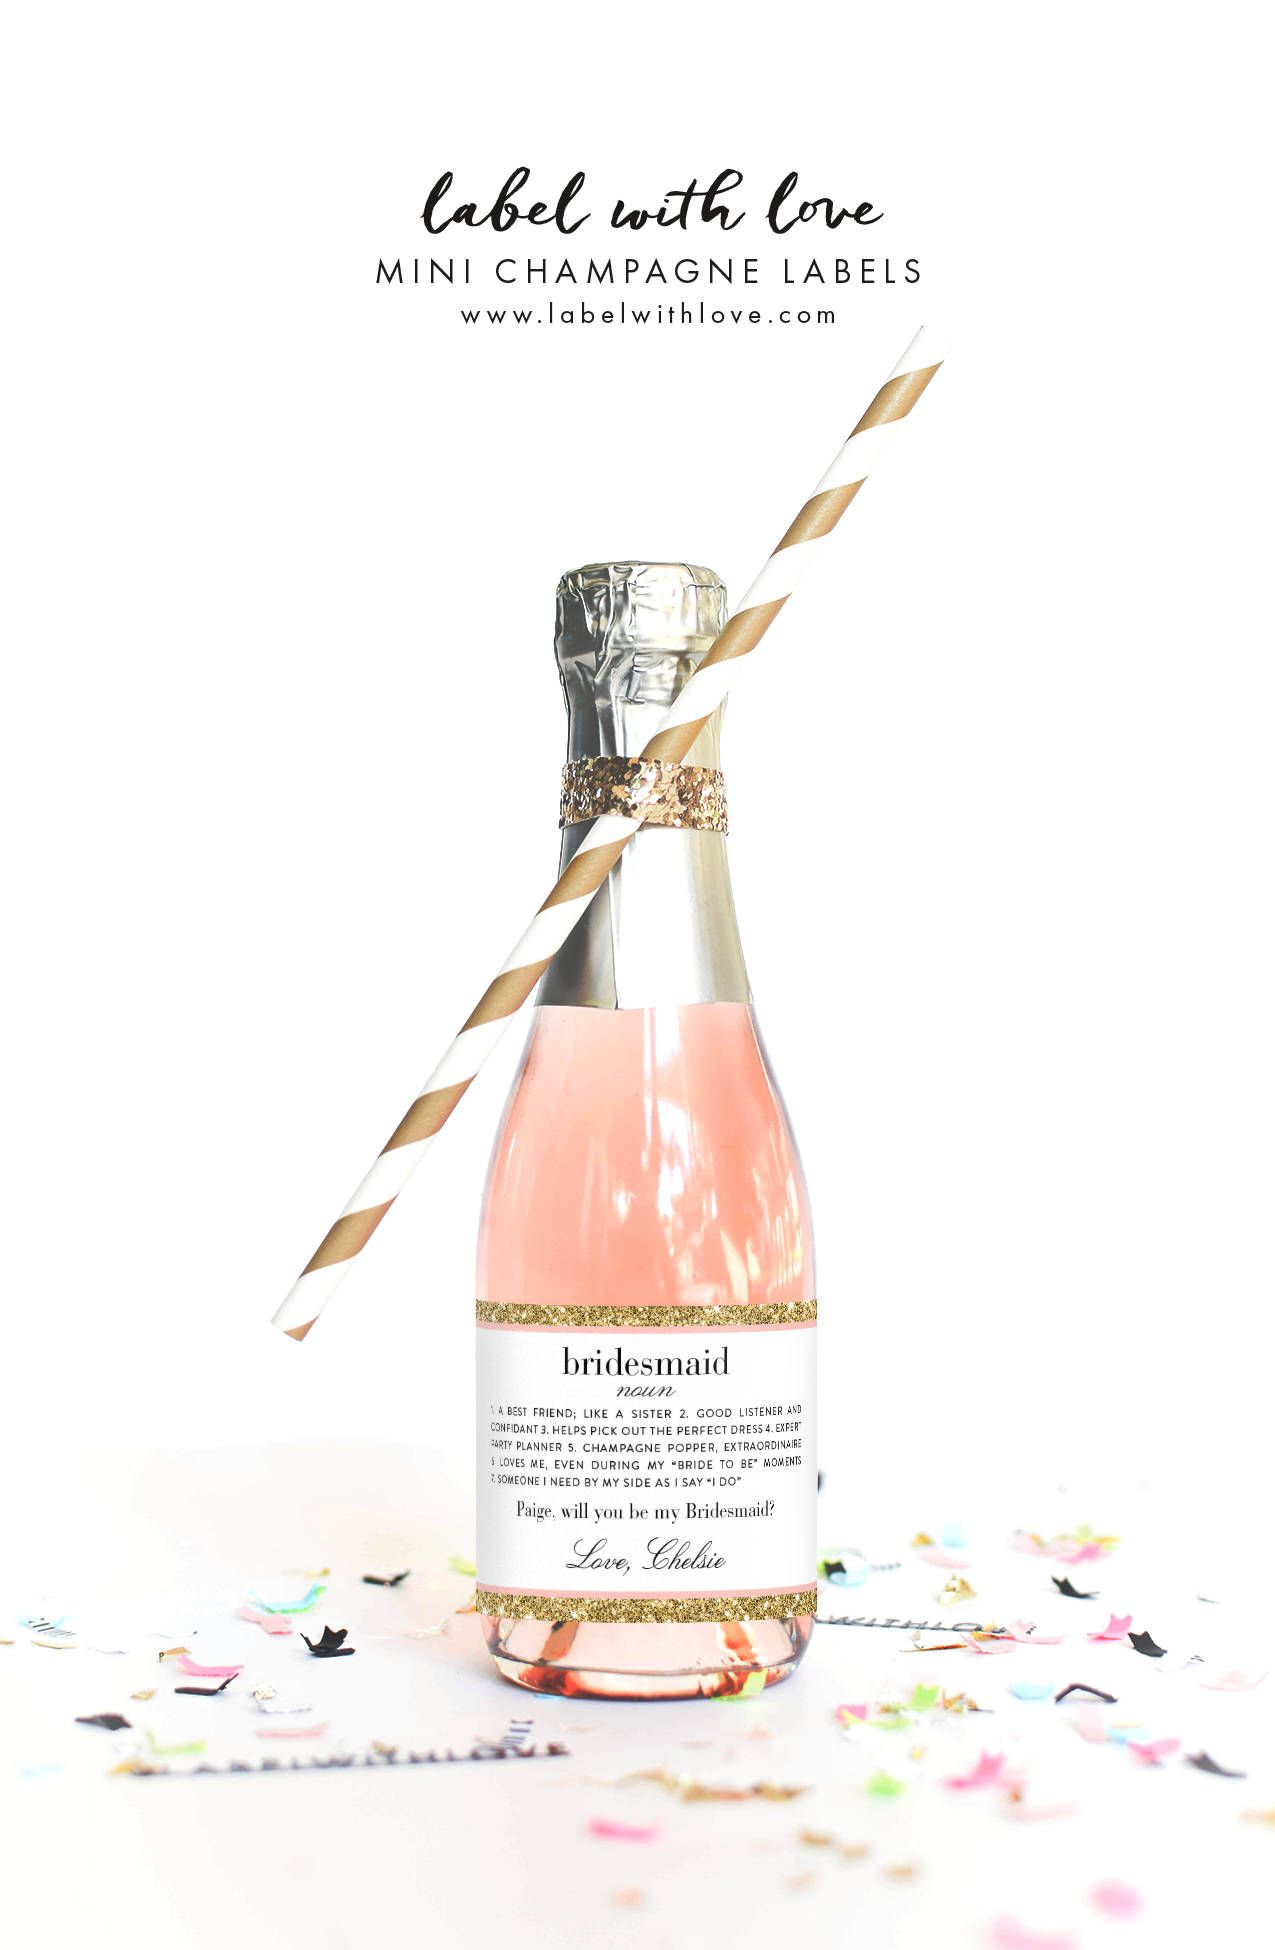 Party Proposal Impressive Propose To Your Bridesmaids With A Mini Bottle Of Champagne And A .